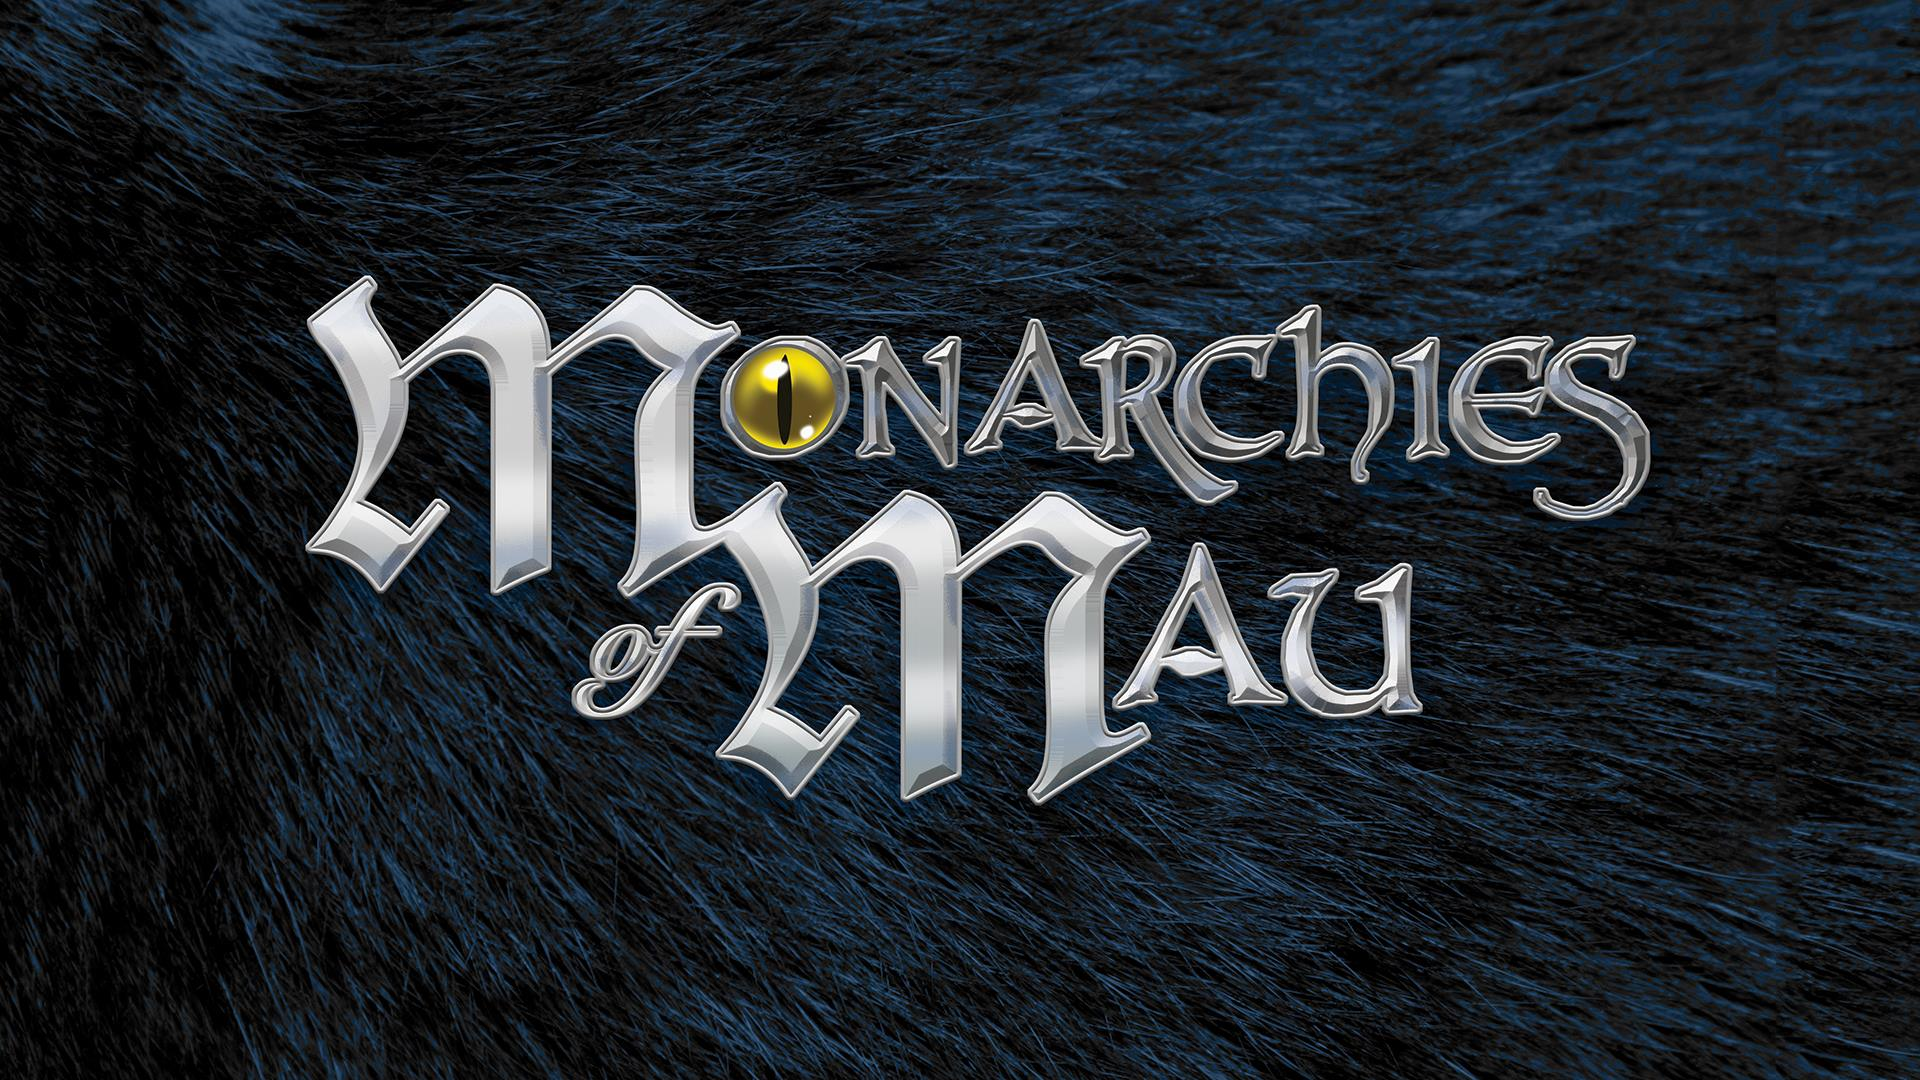 Review of Monarchies of Mau